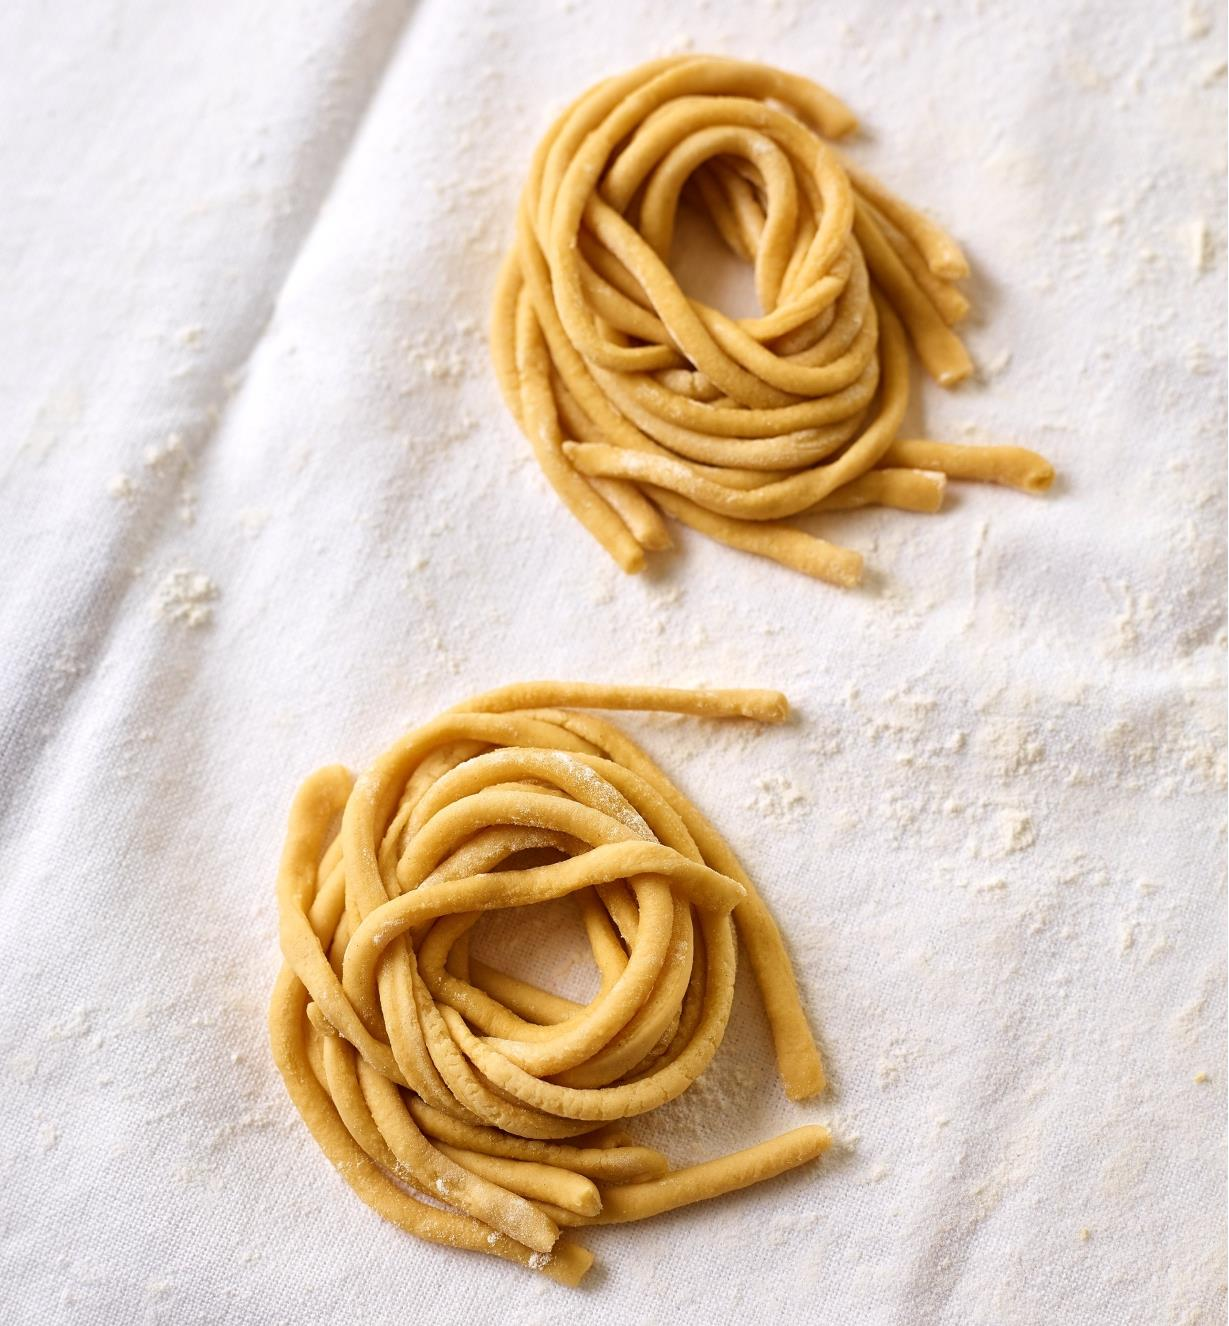 Fresh bucatini noodles made with the Marcato Pasta Extruder